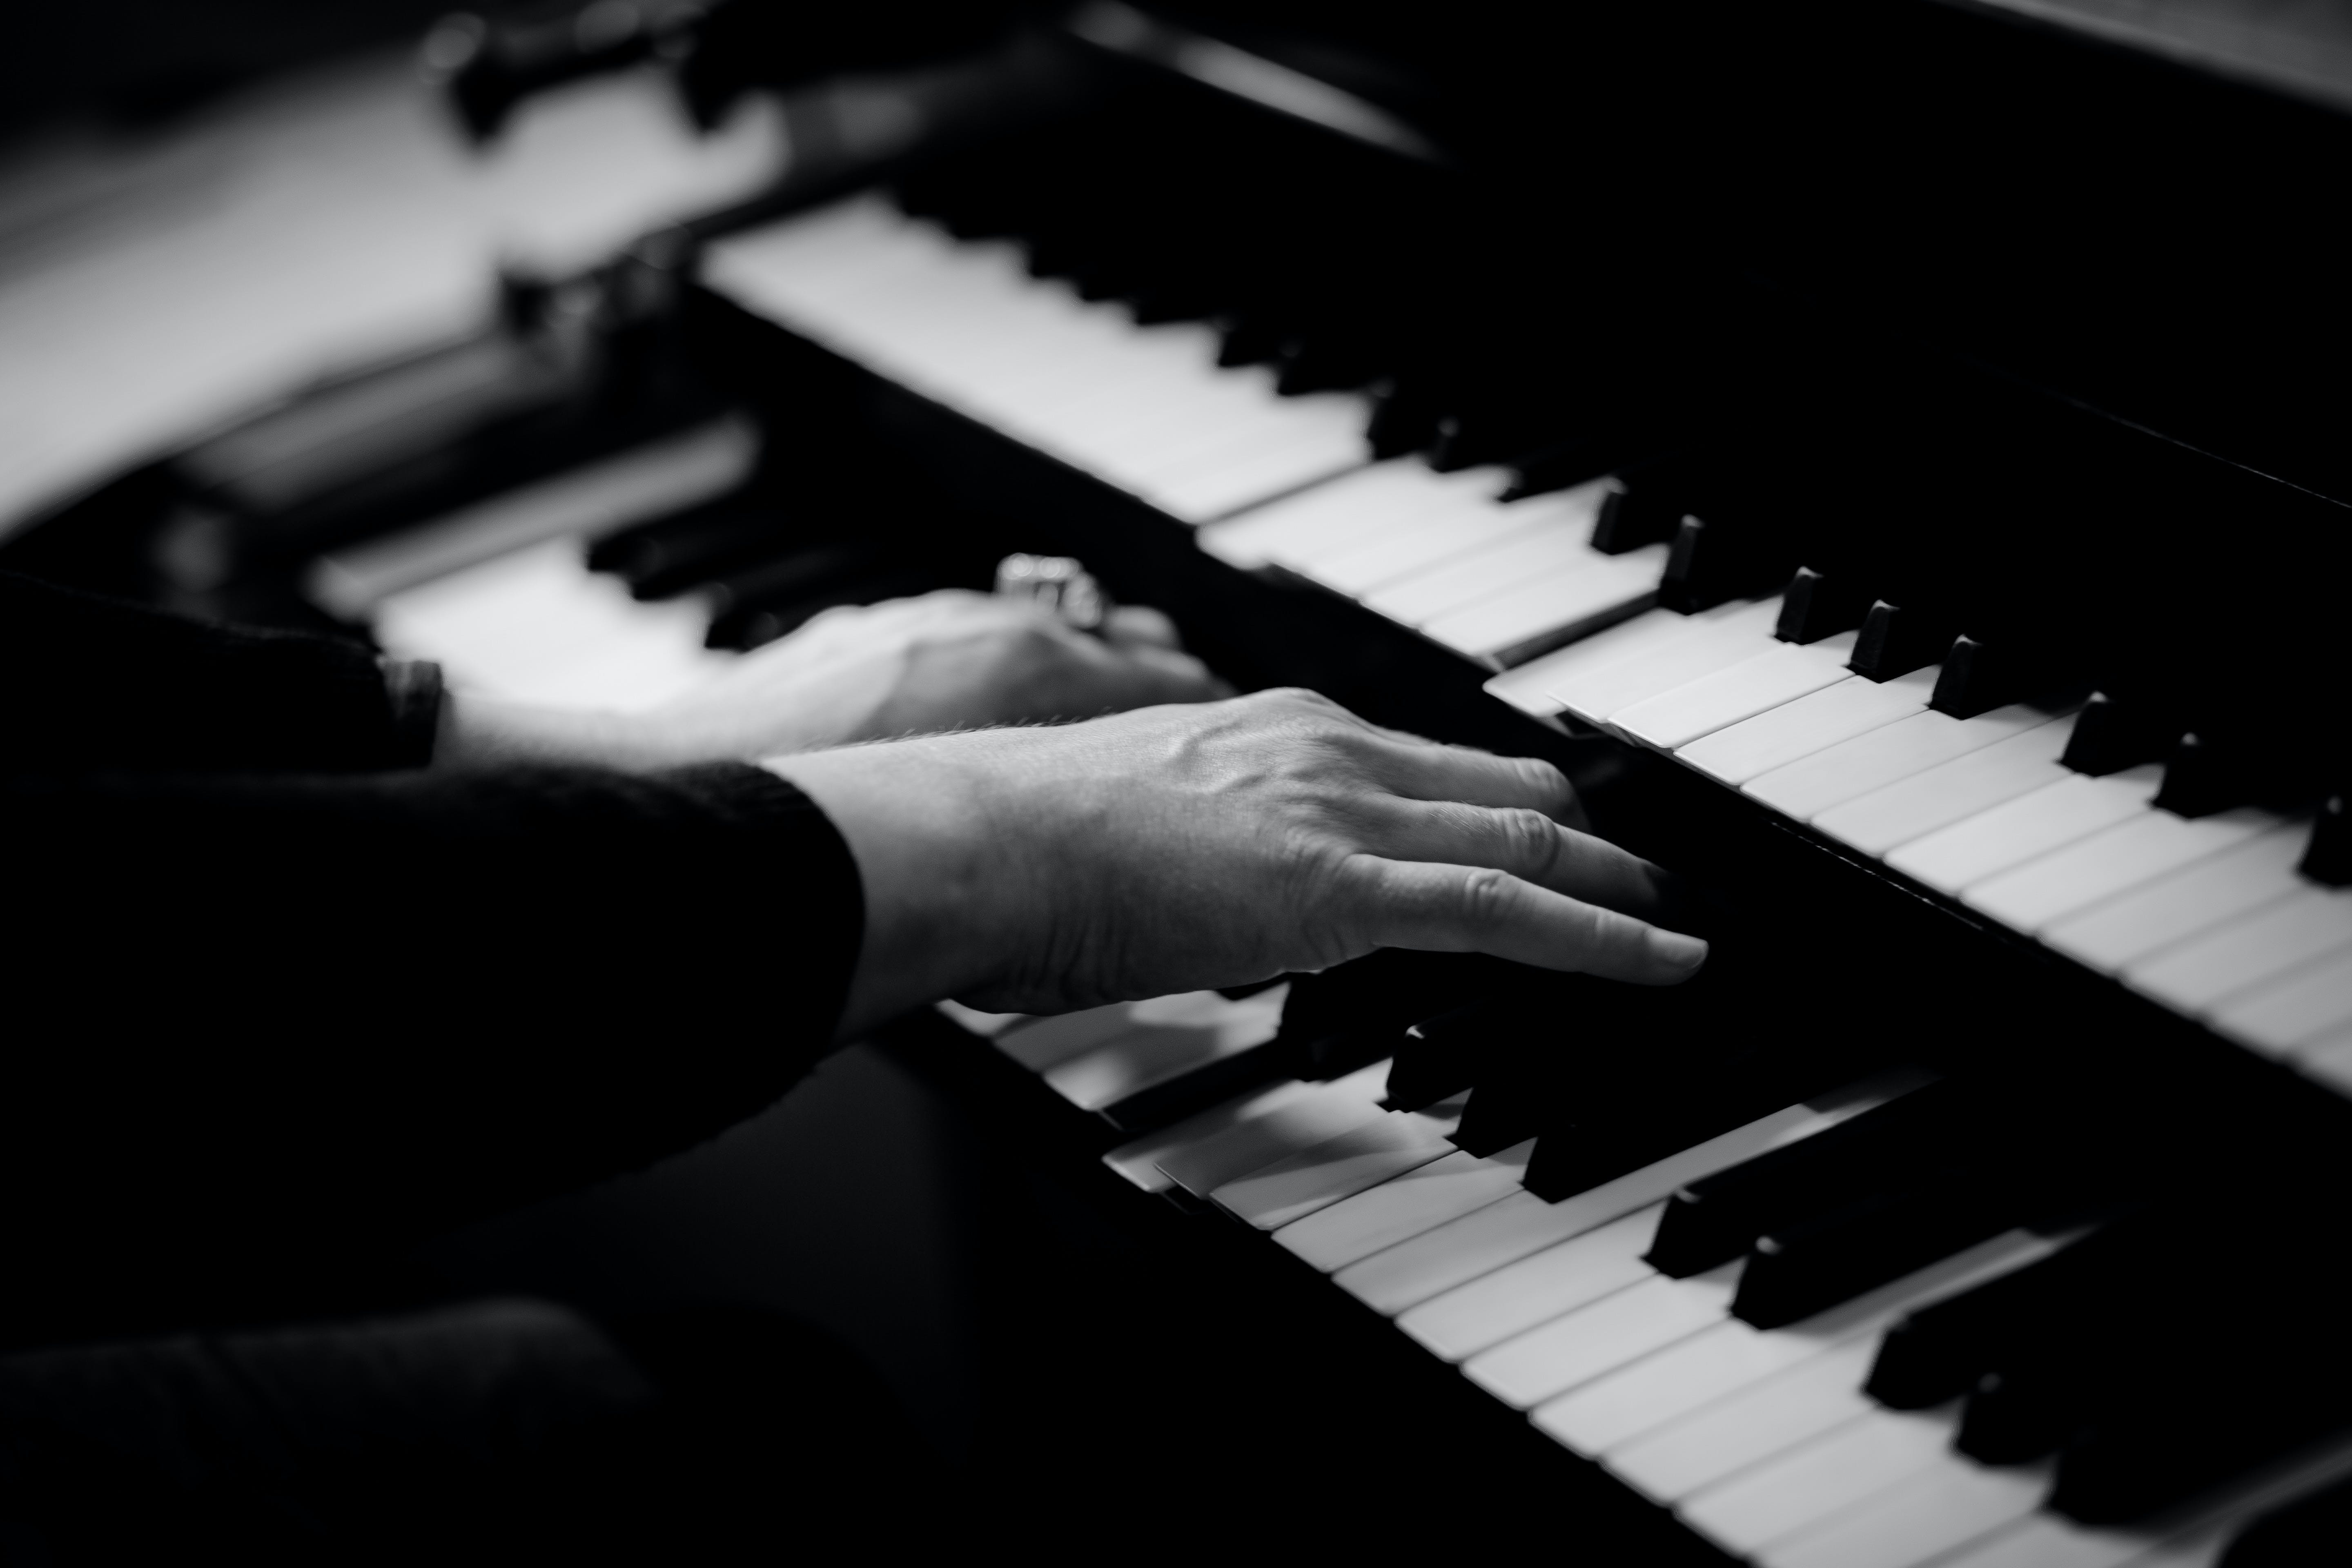 Person Playing Musical Organ Grayscale Photo